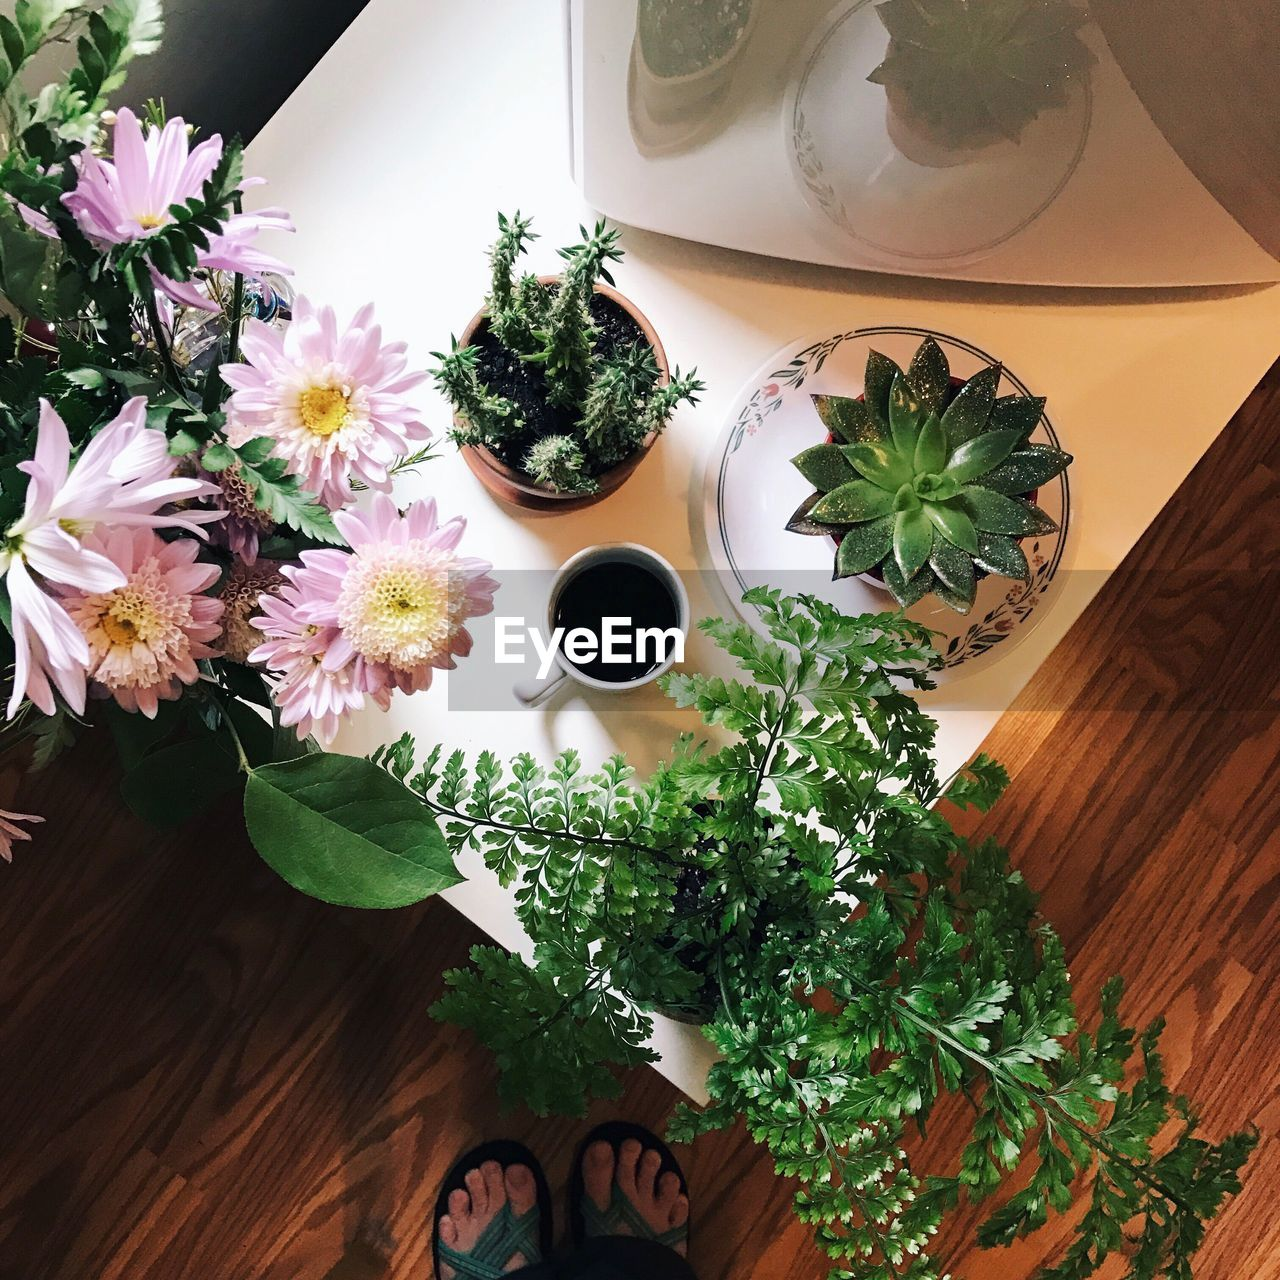 High Angle View Of Plants On Table